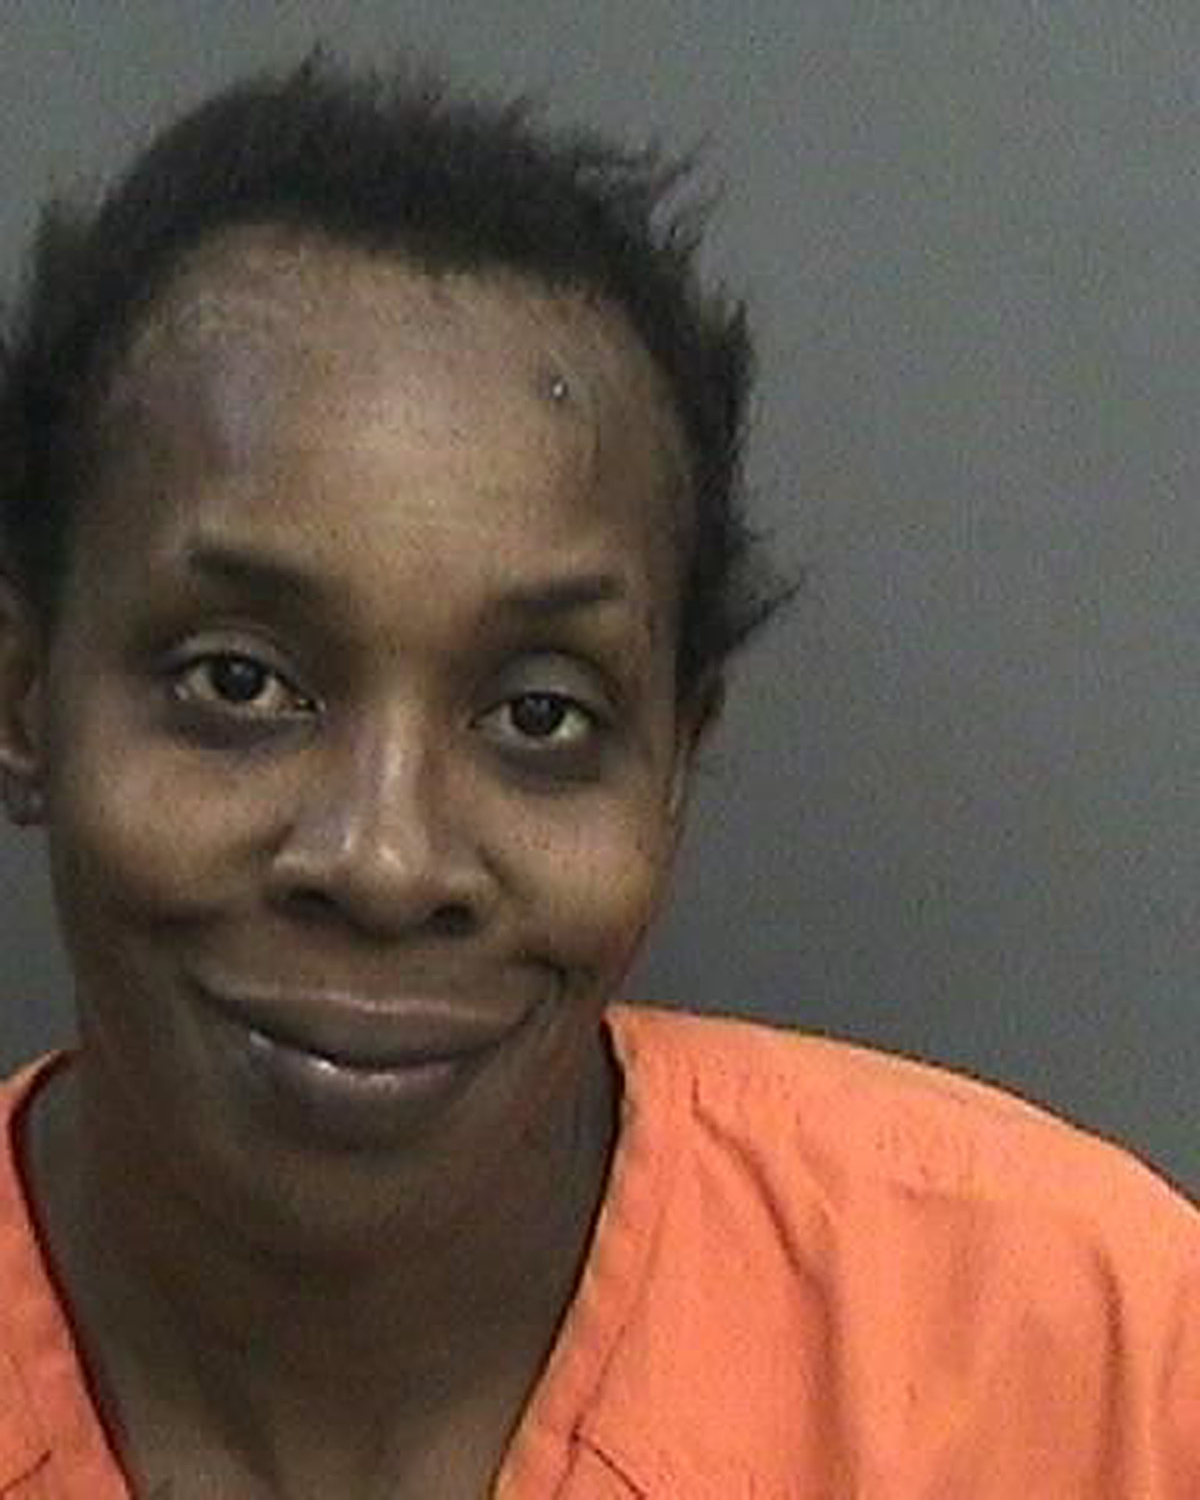 Sale Of Tax Refund Checks Gets Woman 3 Years In Prison